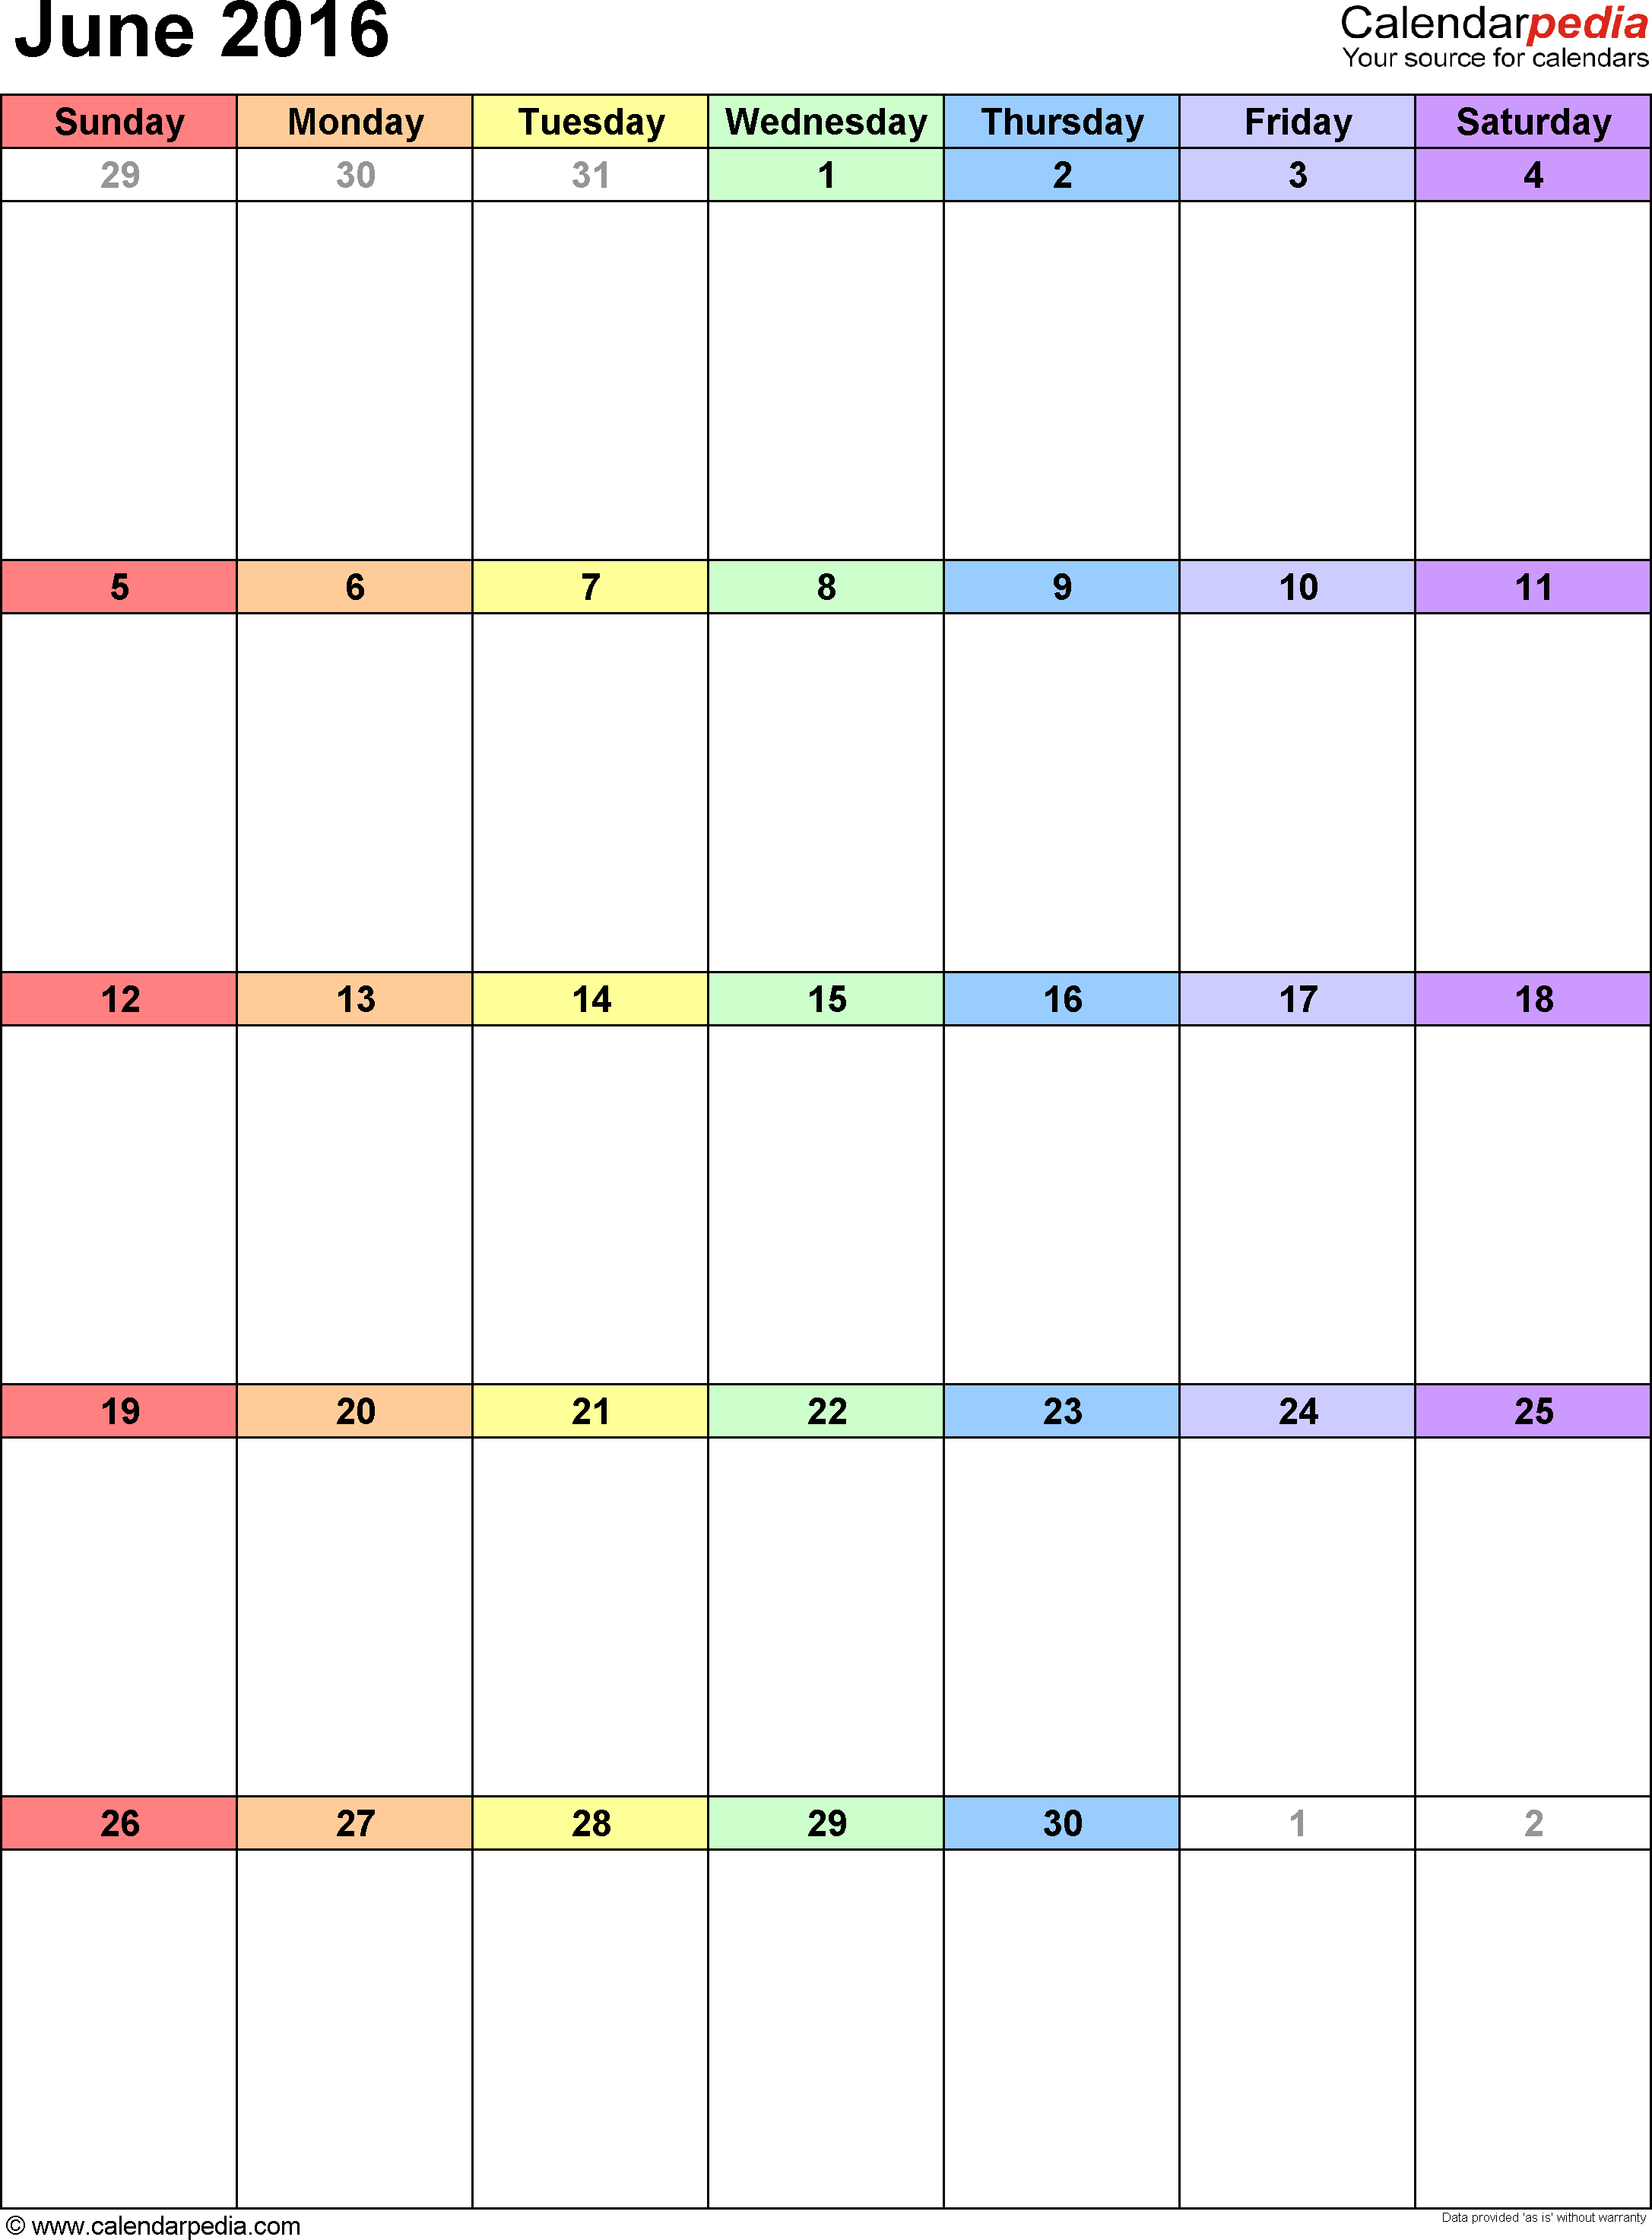 2015 Calendar Excel Download 16 Free Printable Templates June 2016 Calendars For Word Excel And Pdf